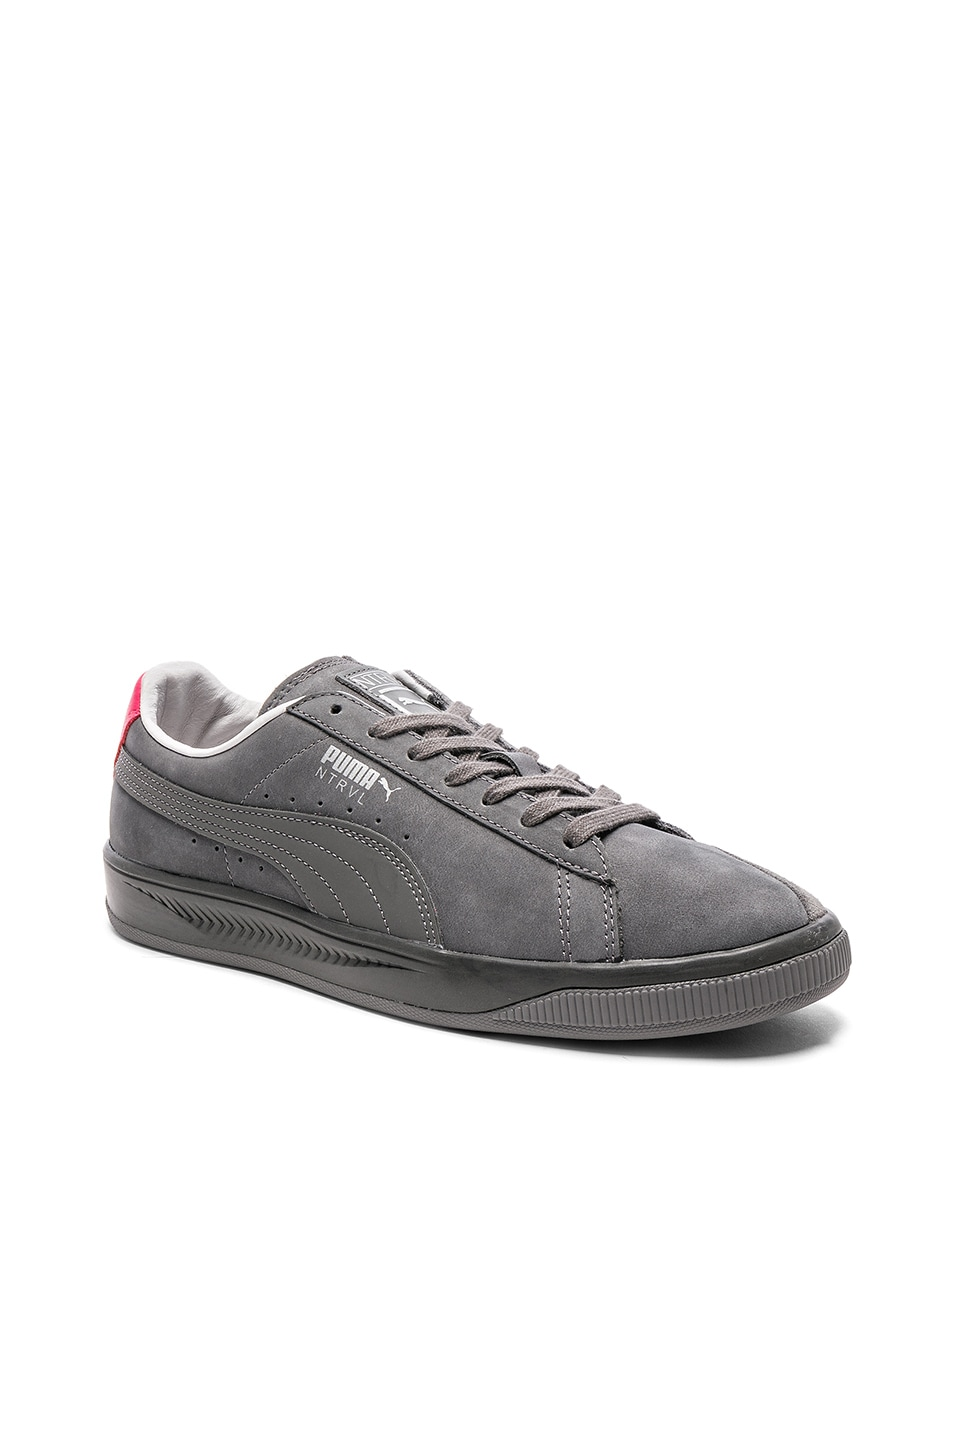 online store 23b13 55ffd Puma Select x Staple Suede Ignite in Smoked Pearl & Puma ...